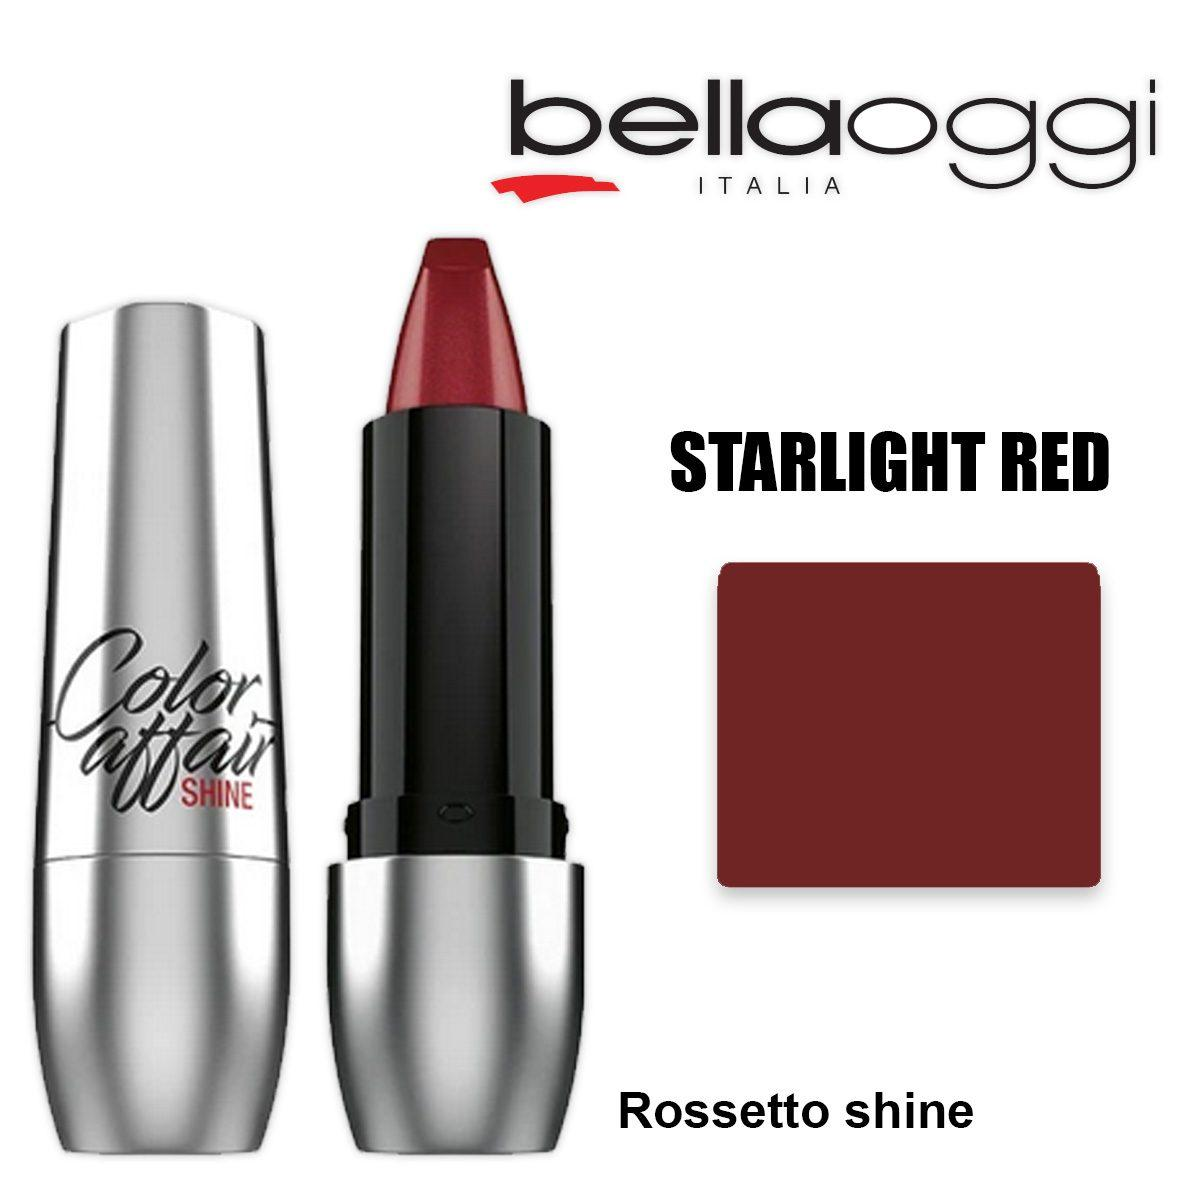 Color affaire shine rossetto shine starlight red